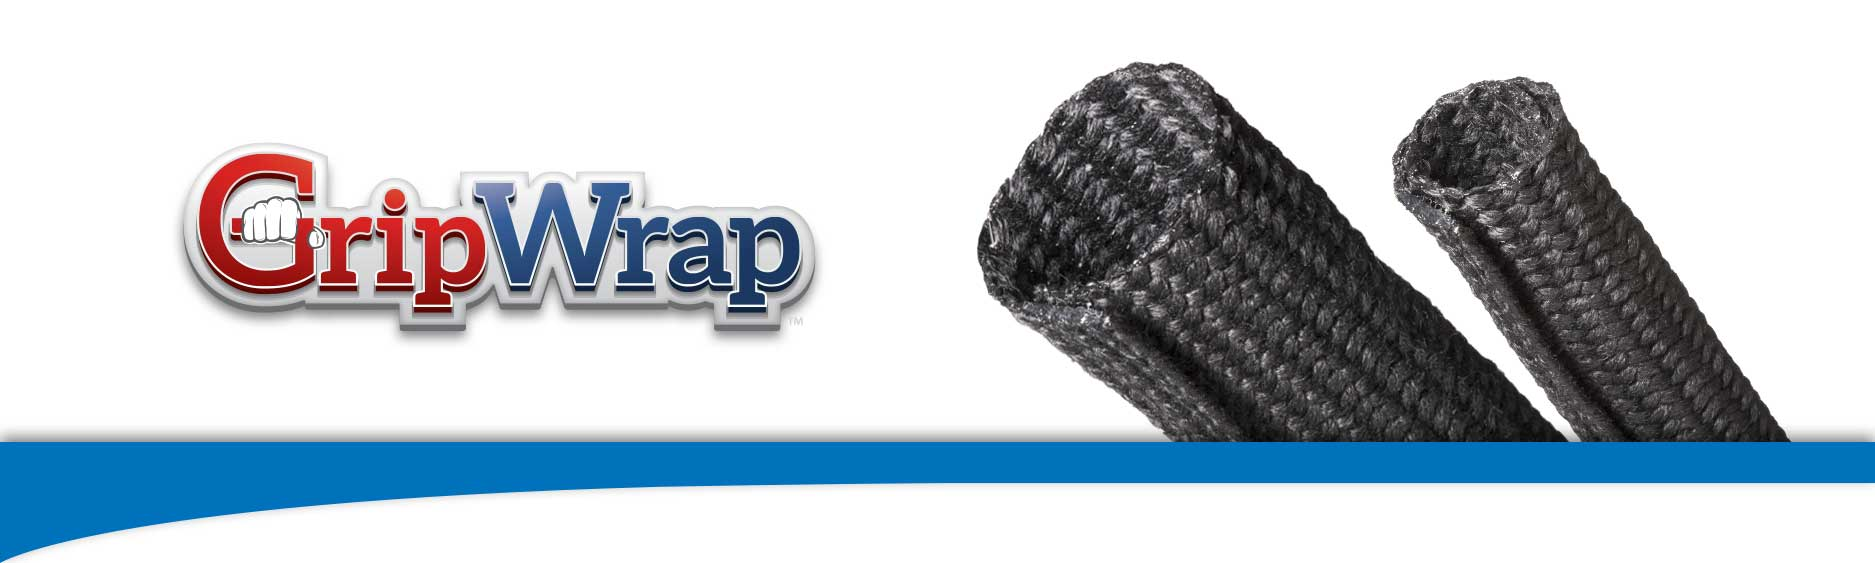 Grip Wrap Variable Diameter Wraparound Sleeving